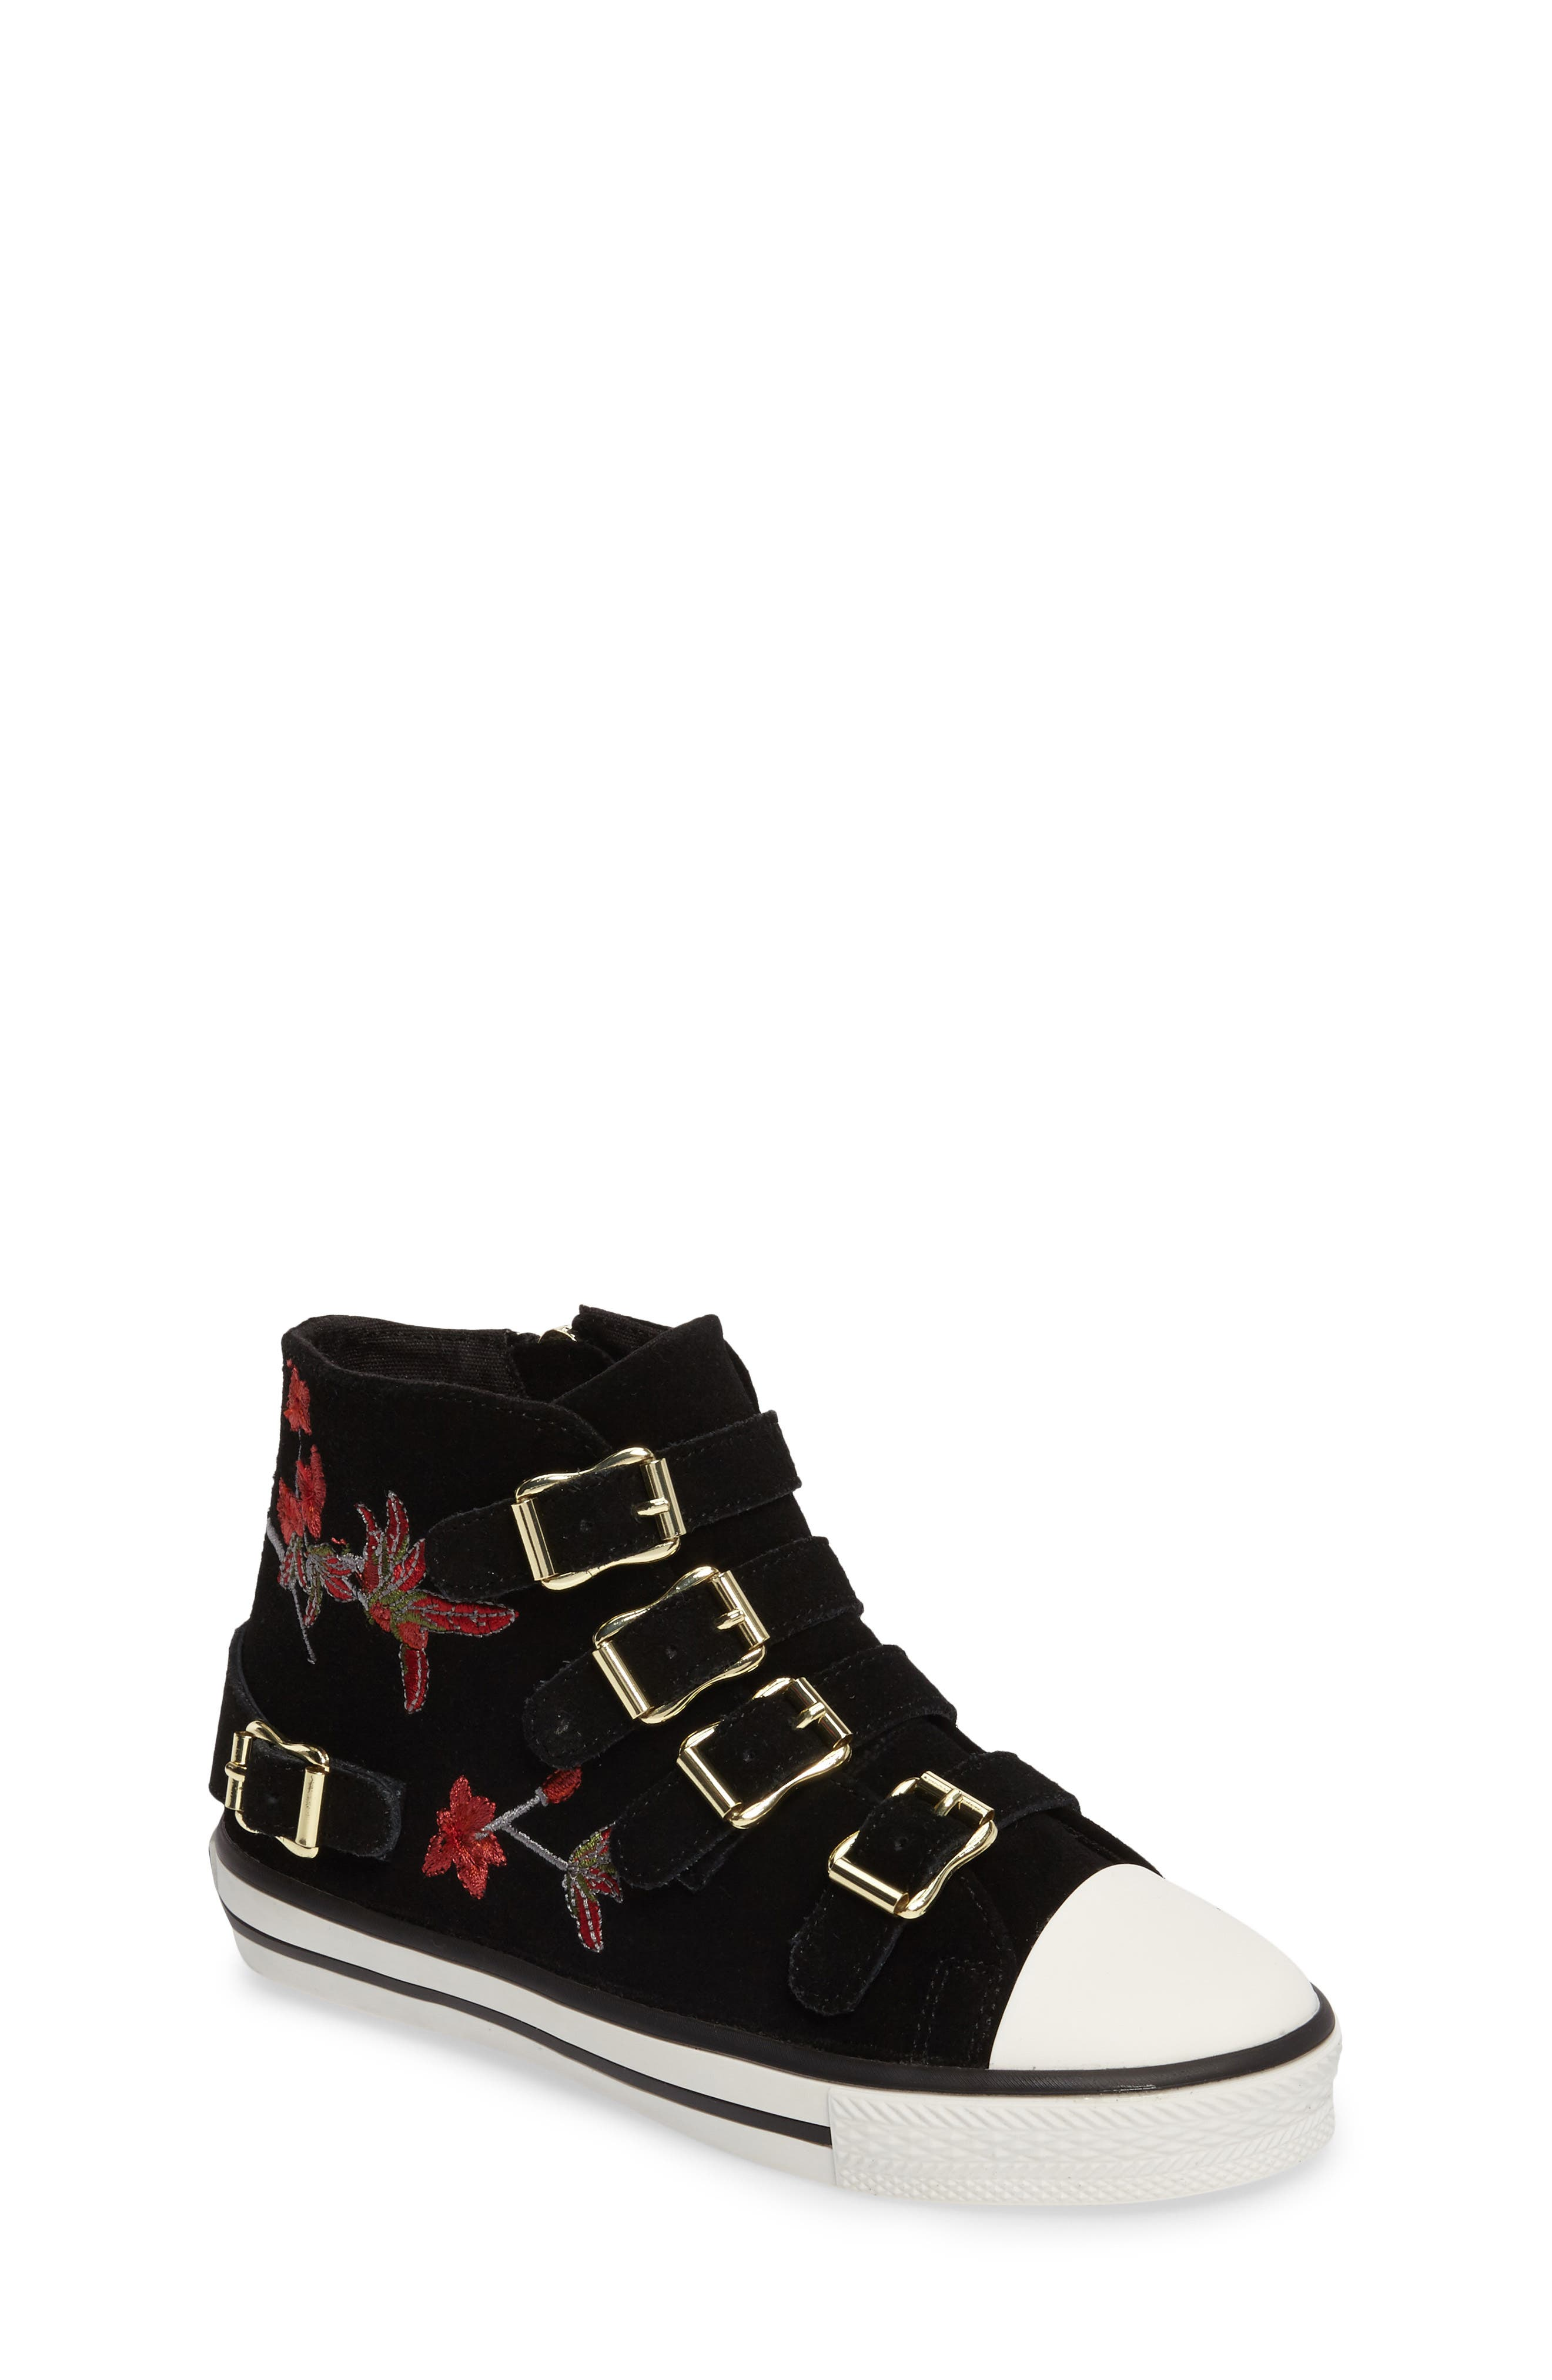 Vava Flowers Embroidered High Top Sneaker,                         Main,                         color, Black Suede